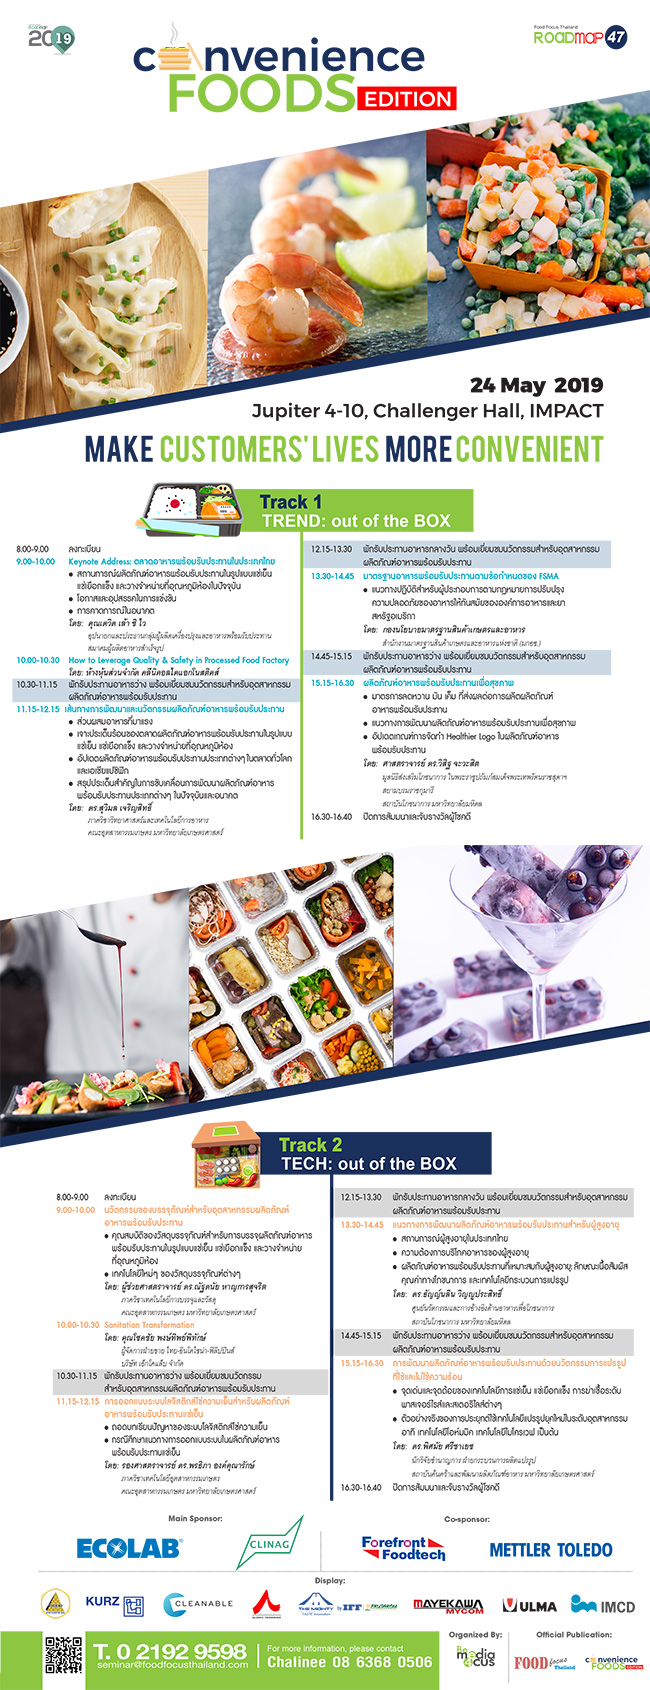 Food Focus Thailand Roadmap 47 #Convenience Foods Edition